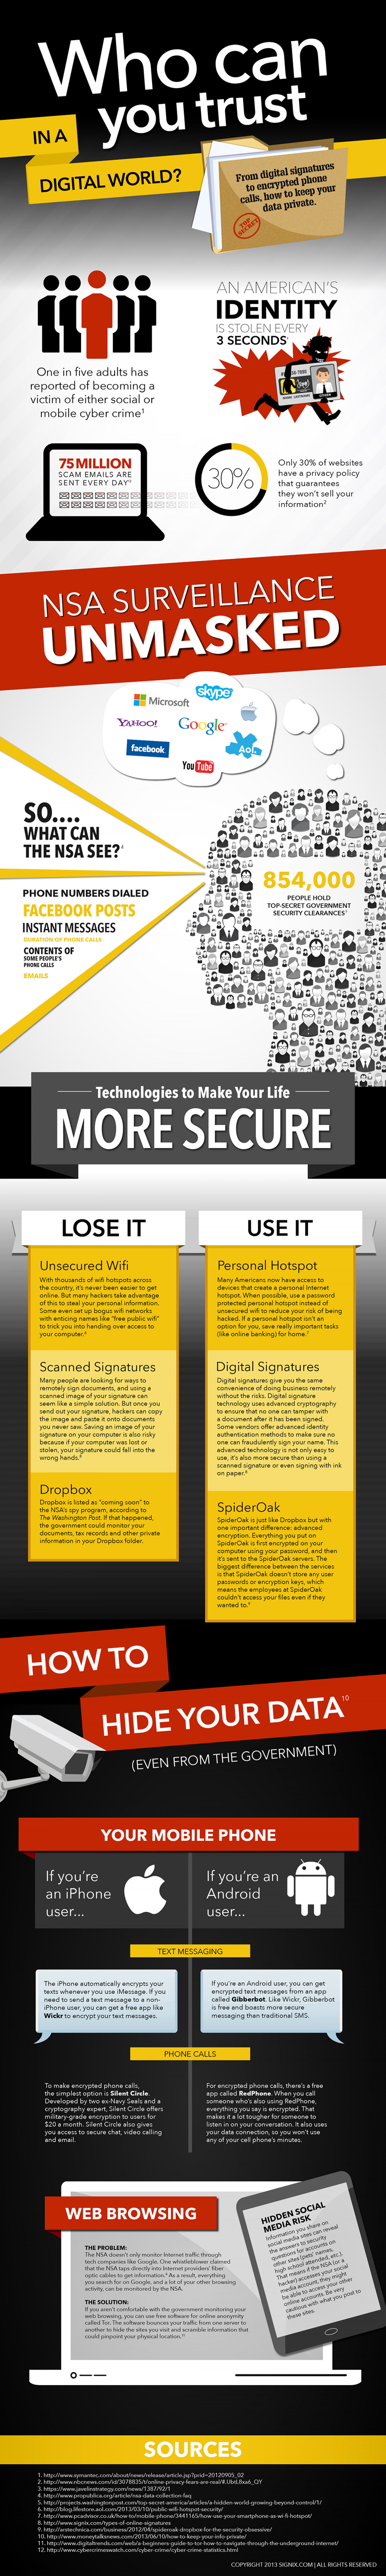 Who Can You Trust in a Digital World: From Digital Signatures to Encrypted Phone Calls, How to Keep Your Data Private Infographic